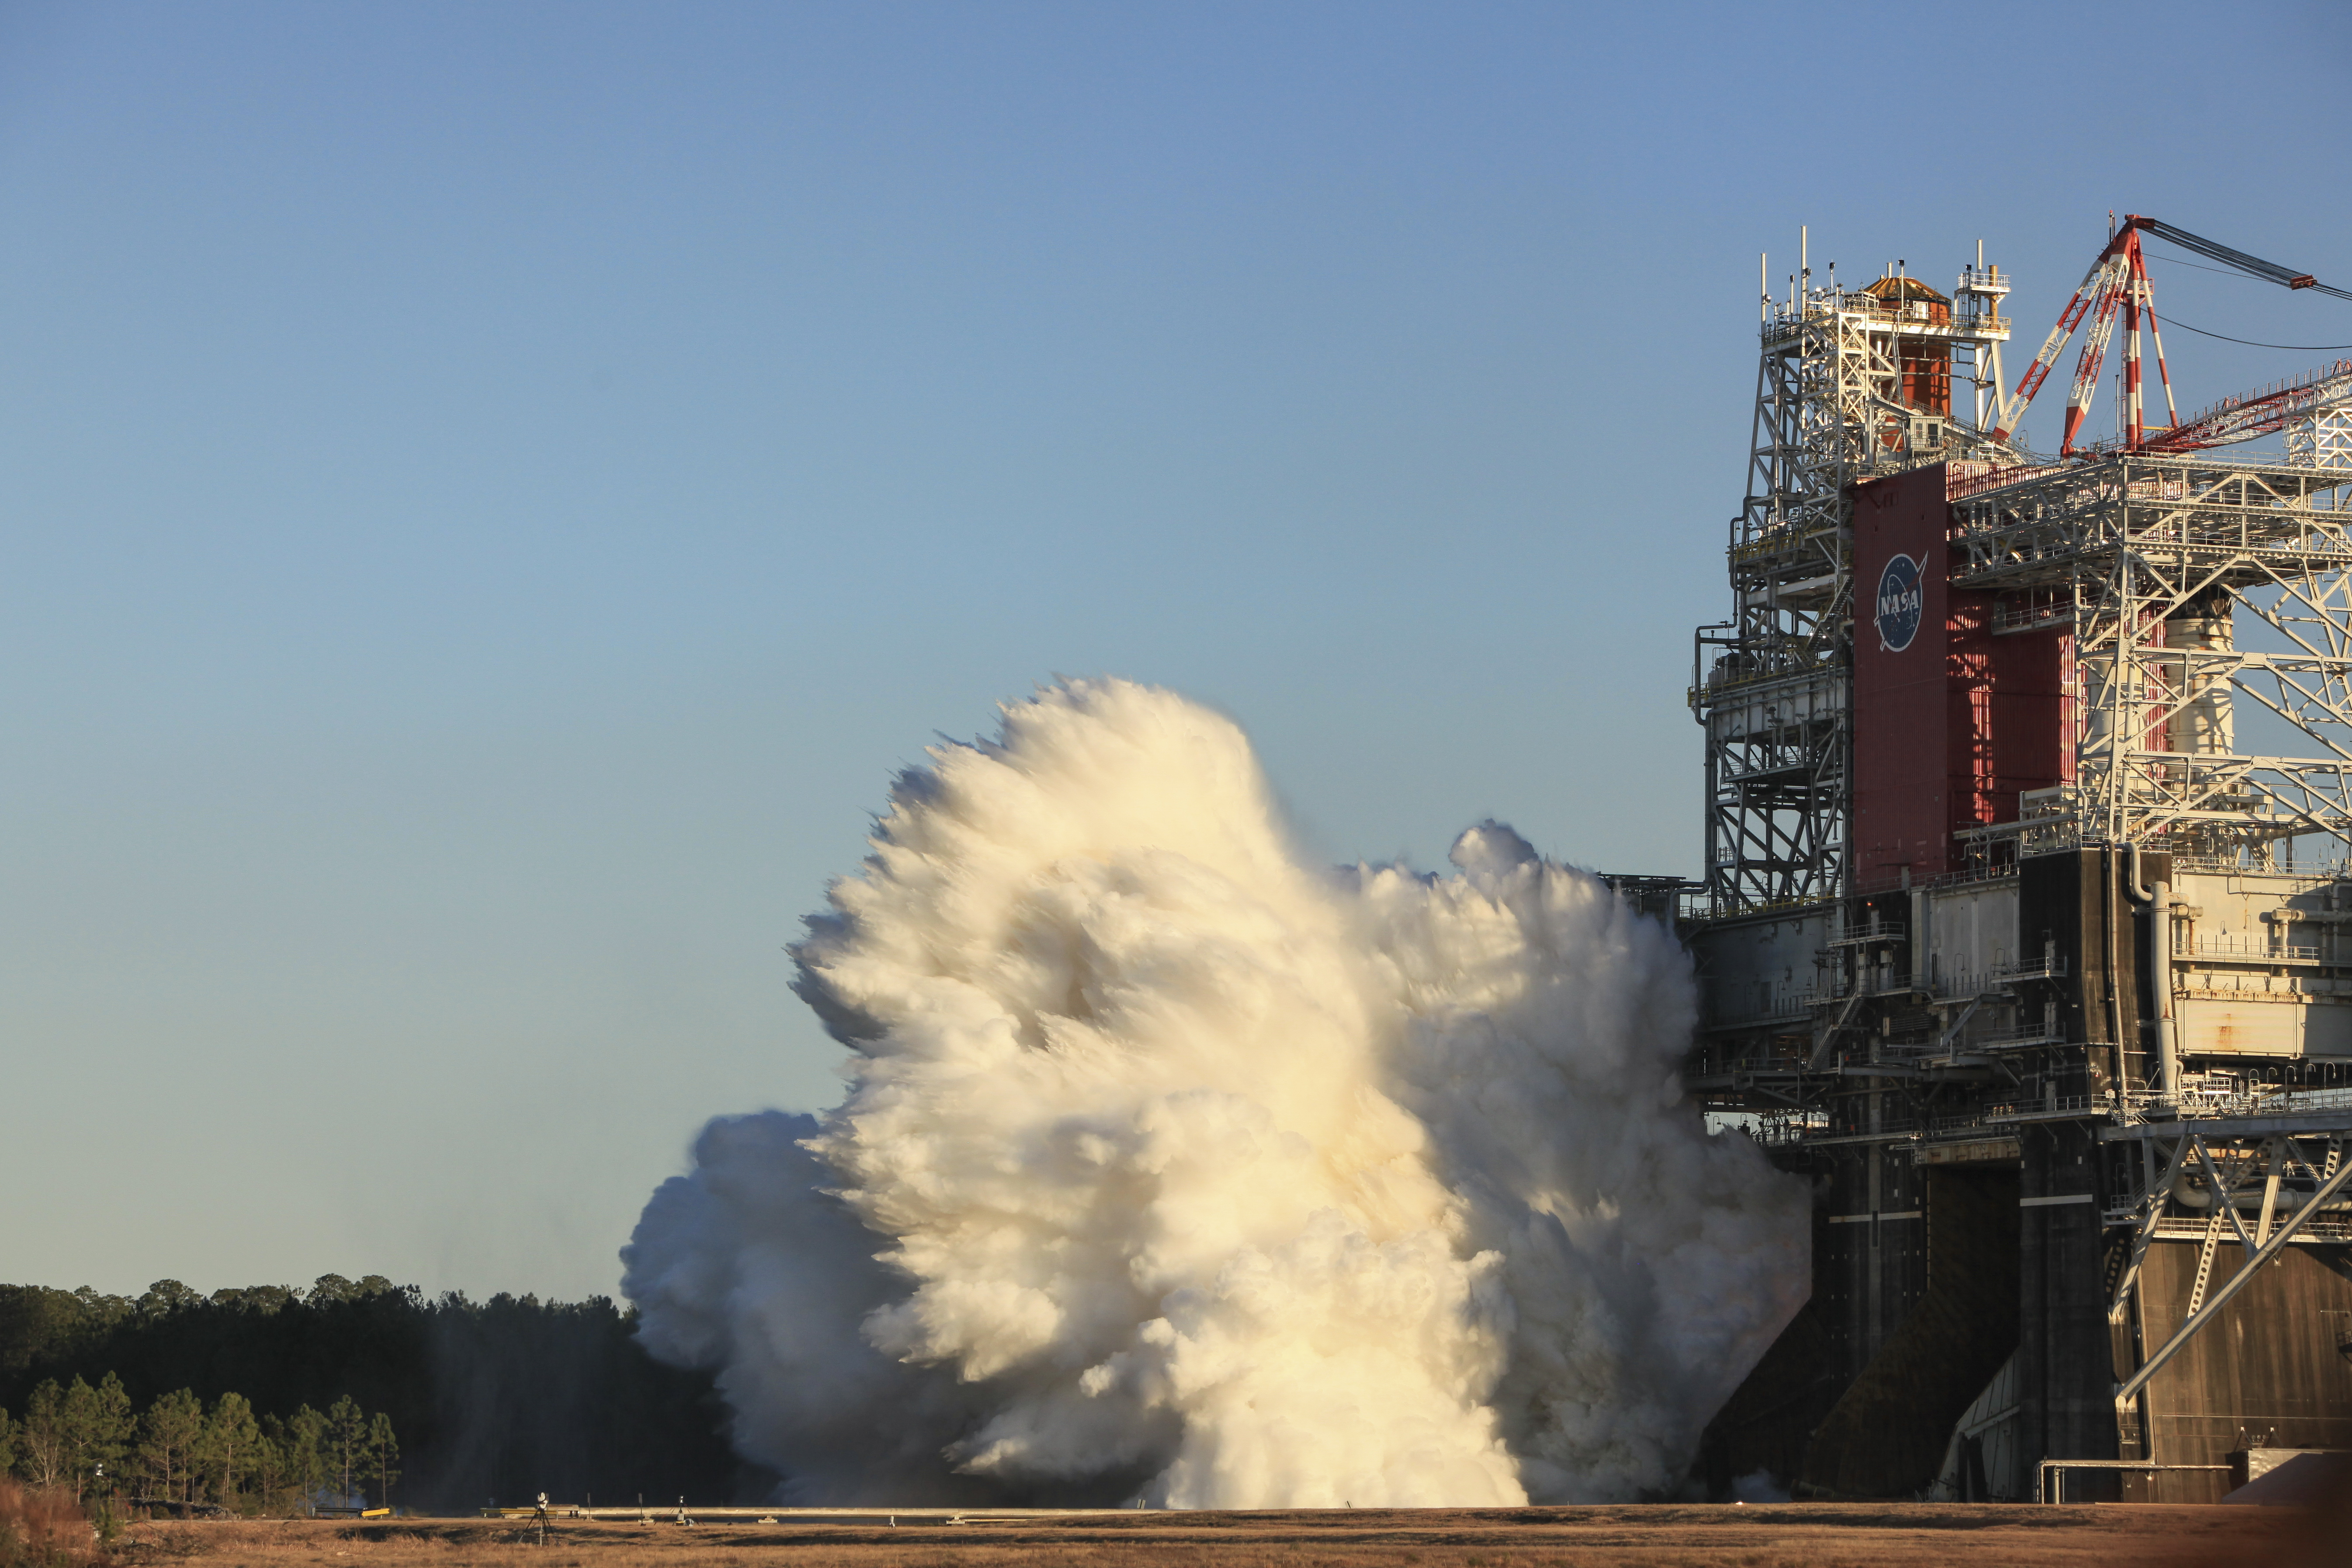 Hot Fire Test of SLS Rocket Core Stage